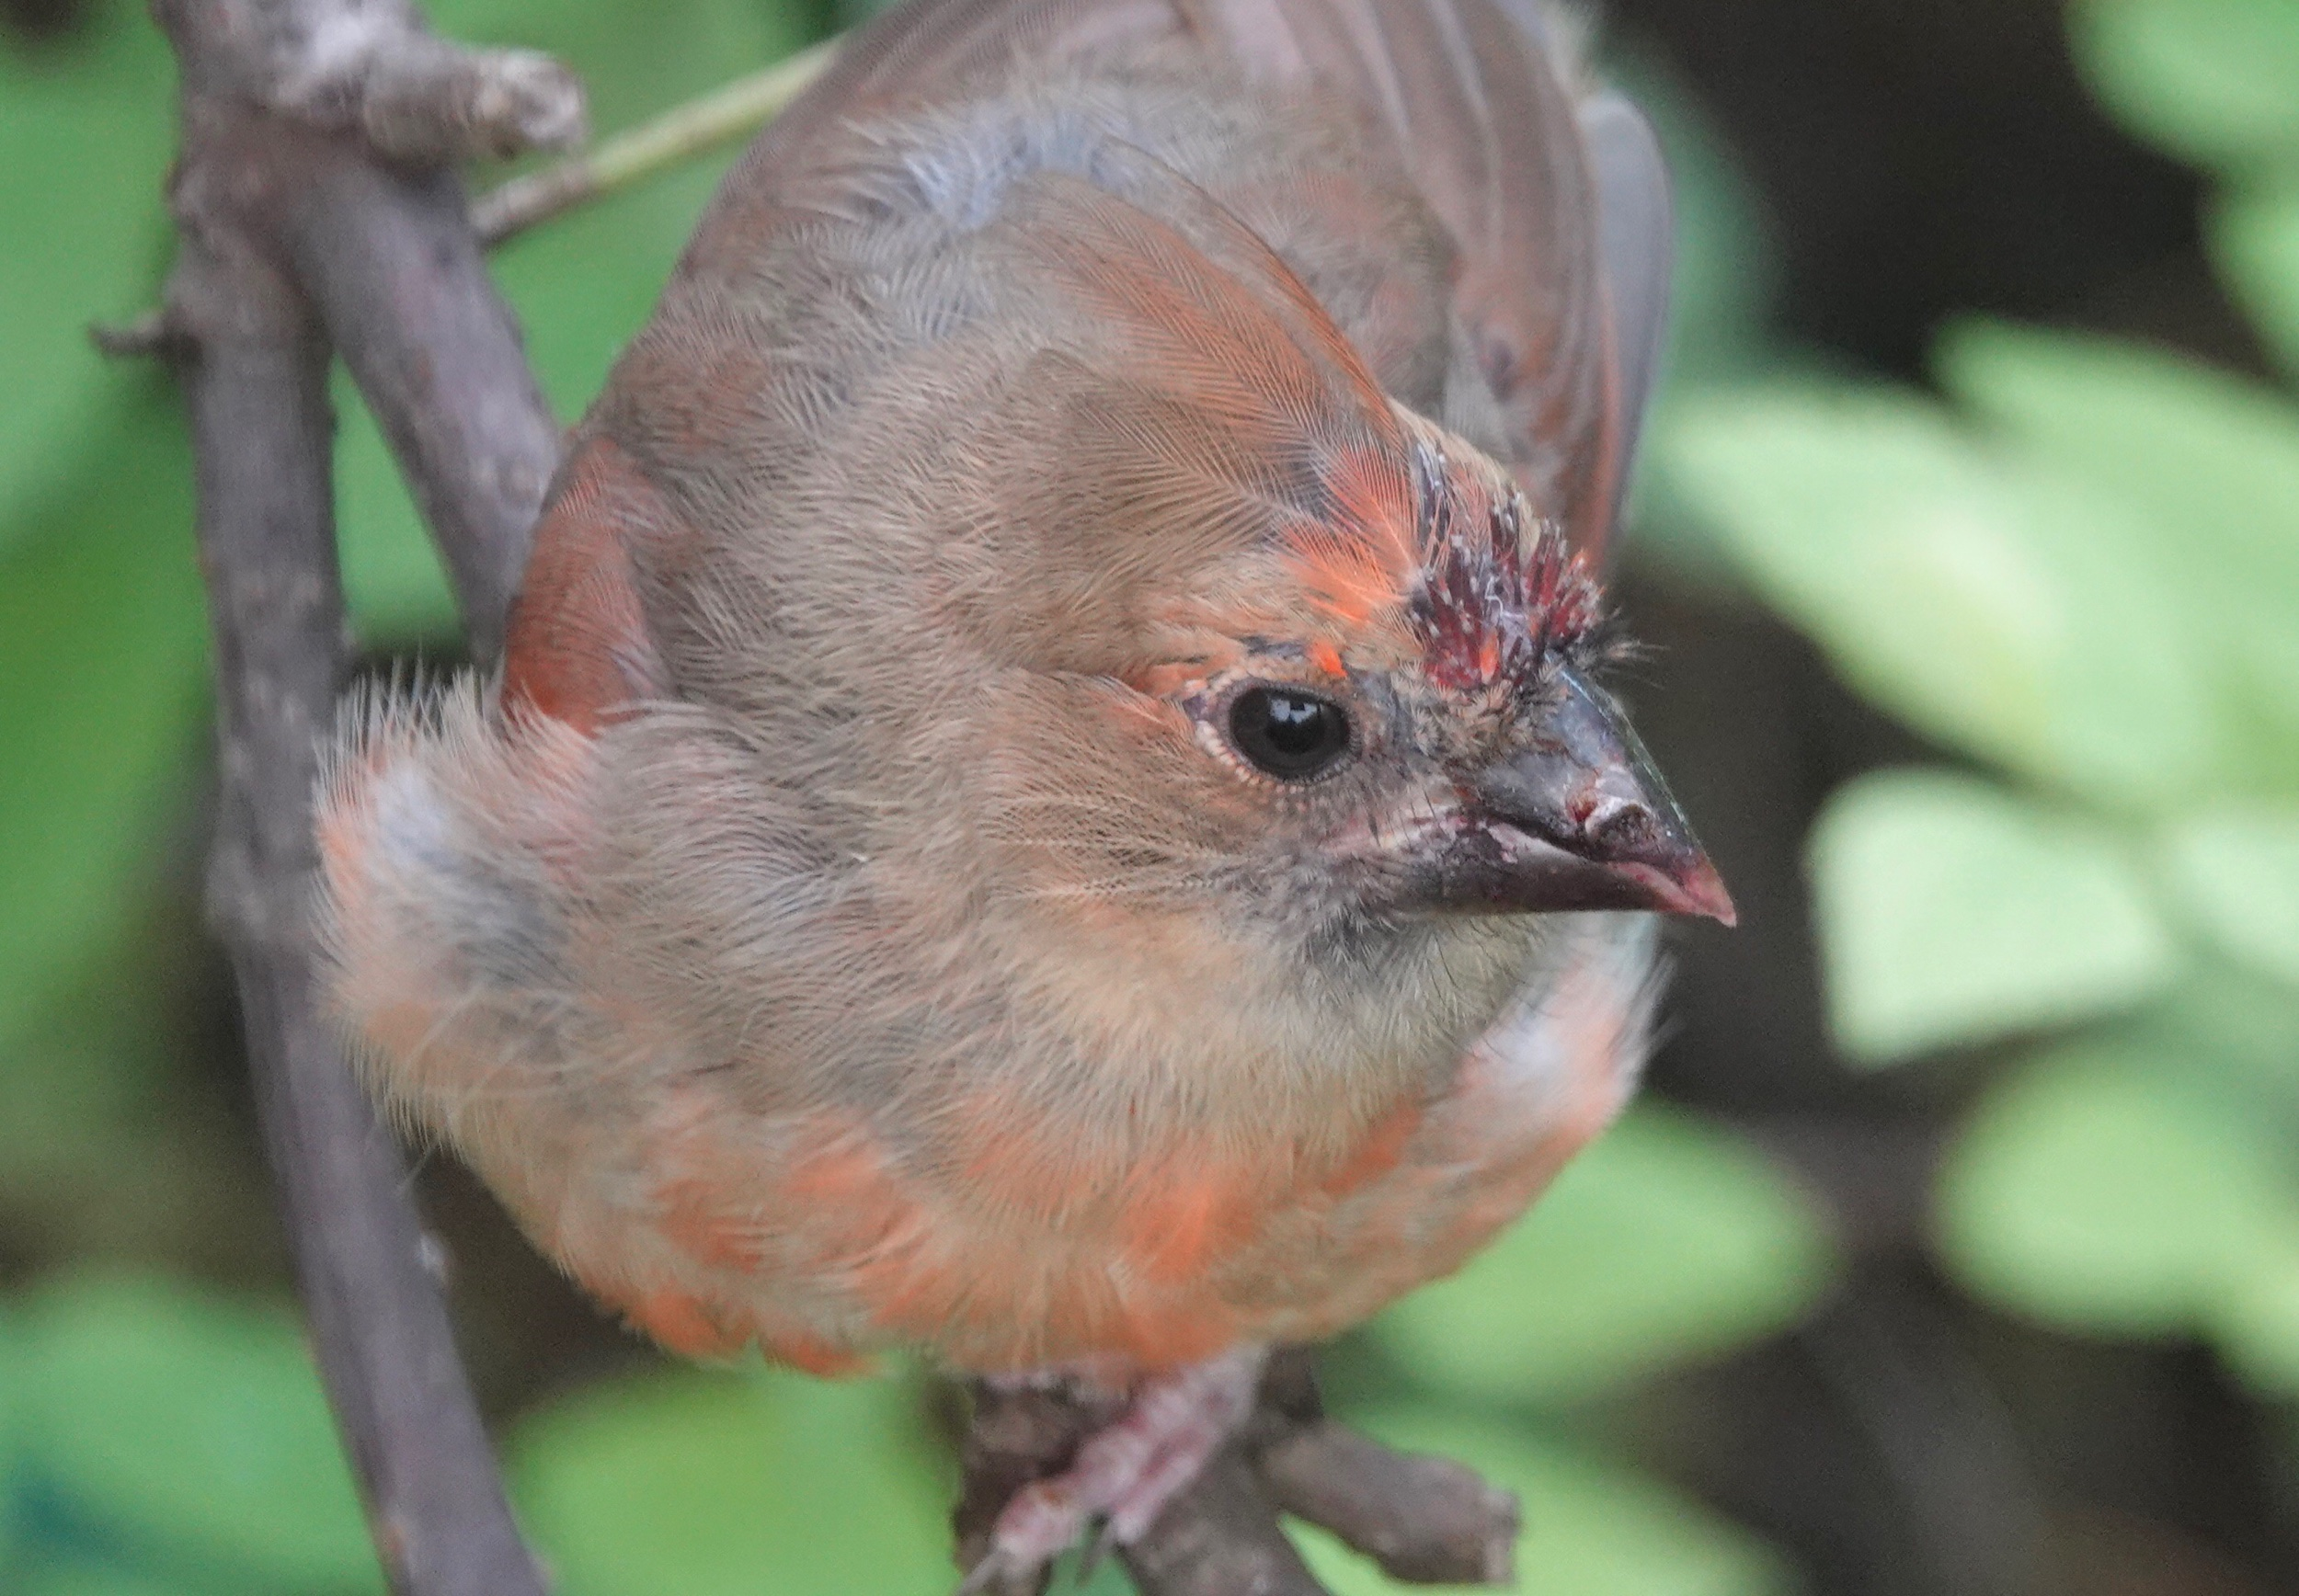 A young cardinal's bill is black.